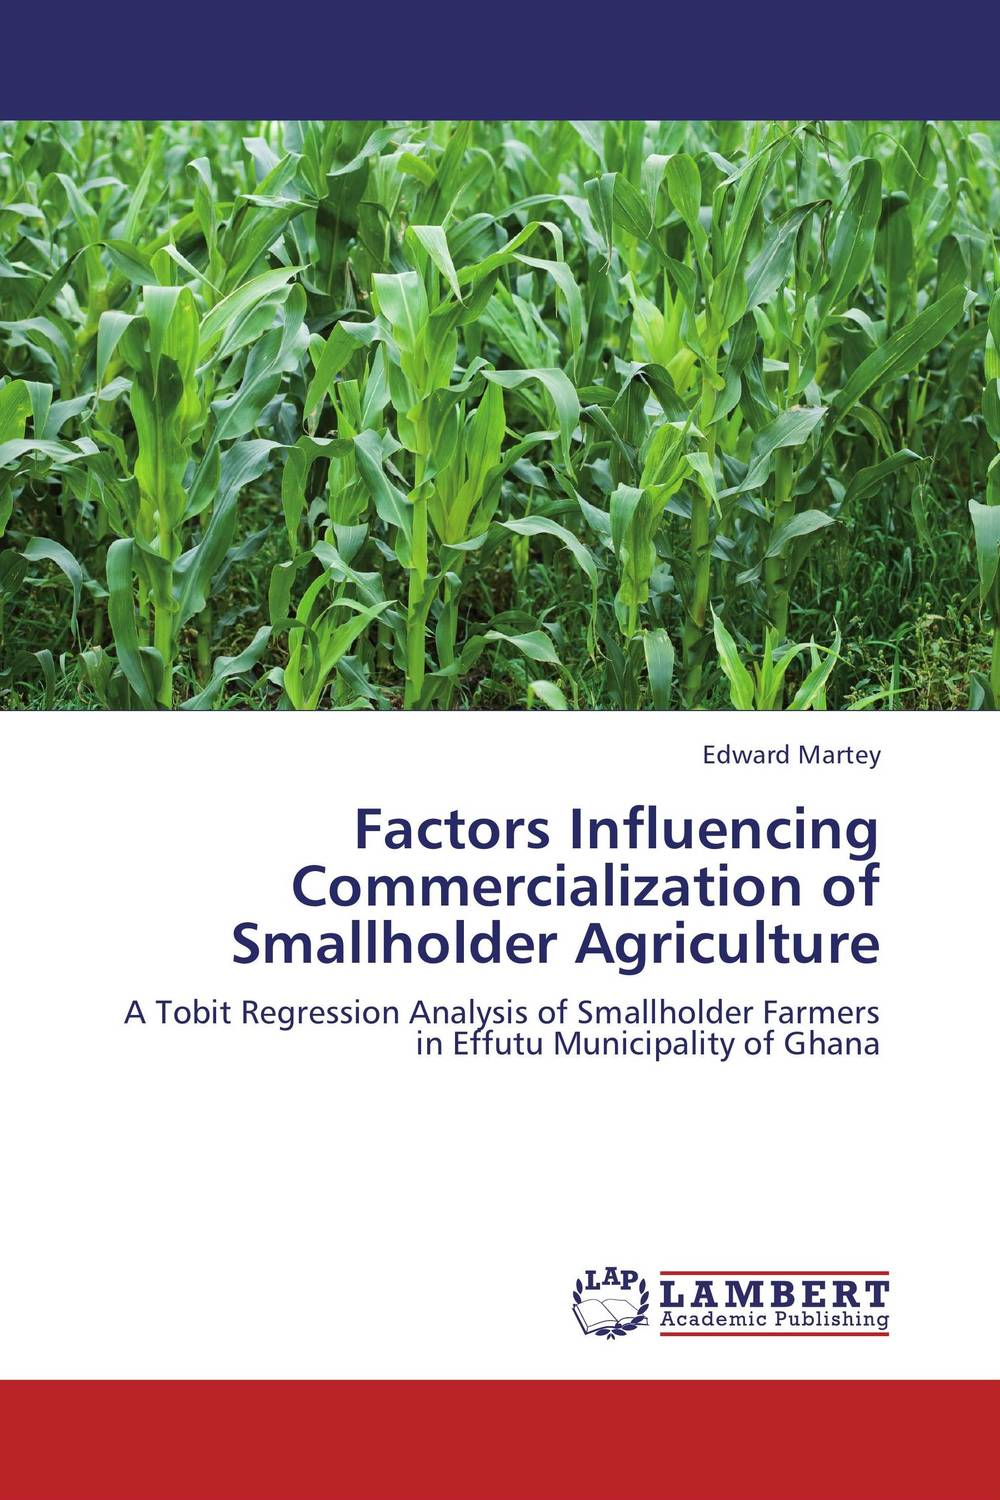 Factors Influencing Commercialization of Smallholder Agriculture